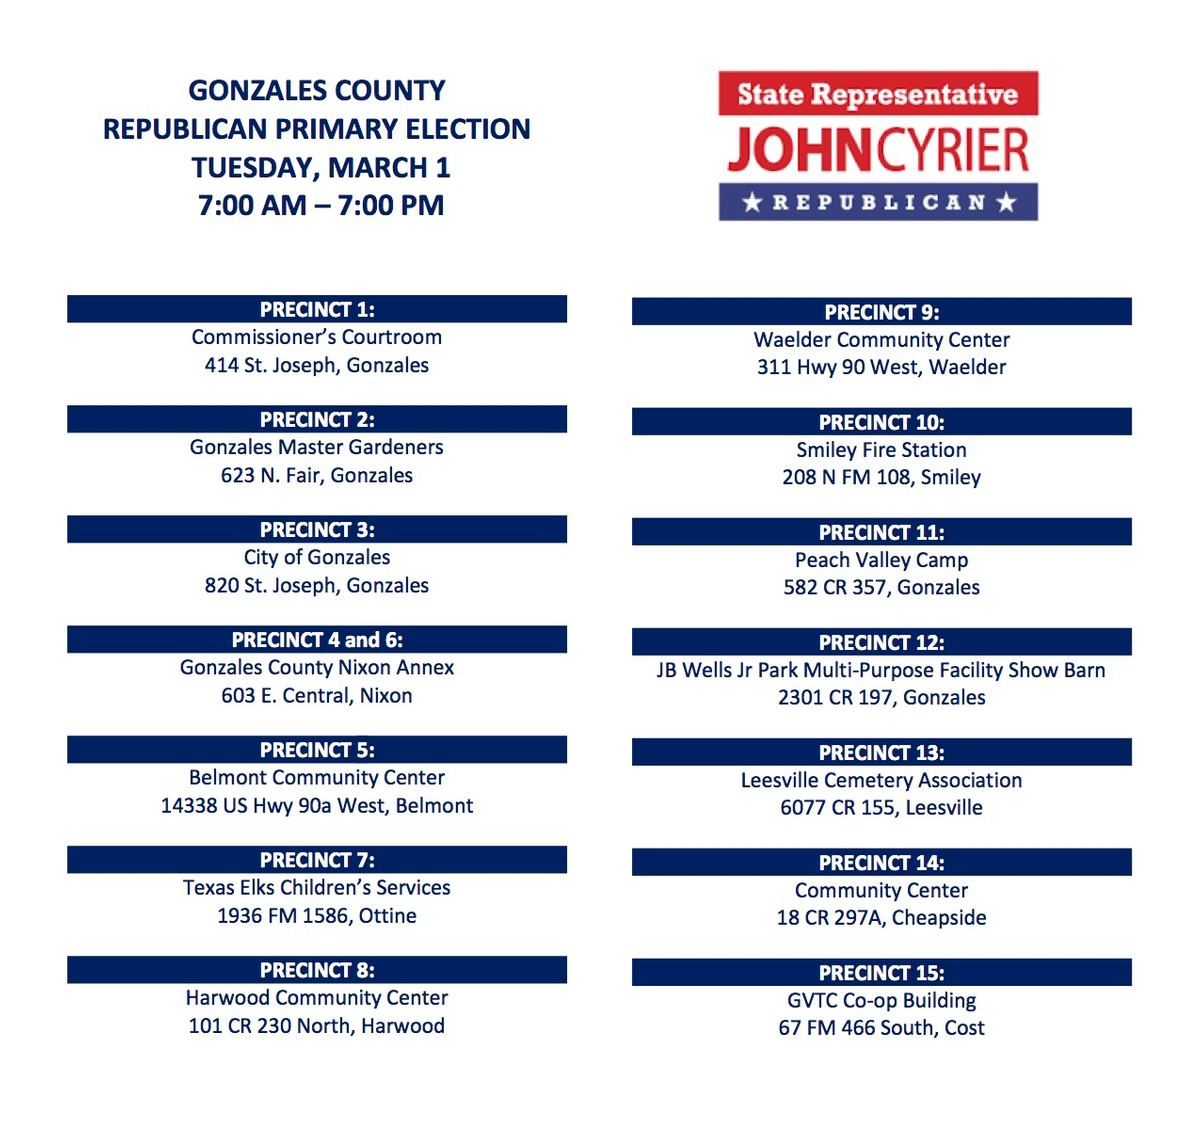 Gonzales County Republican Primary Election 2016 copy.jpg